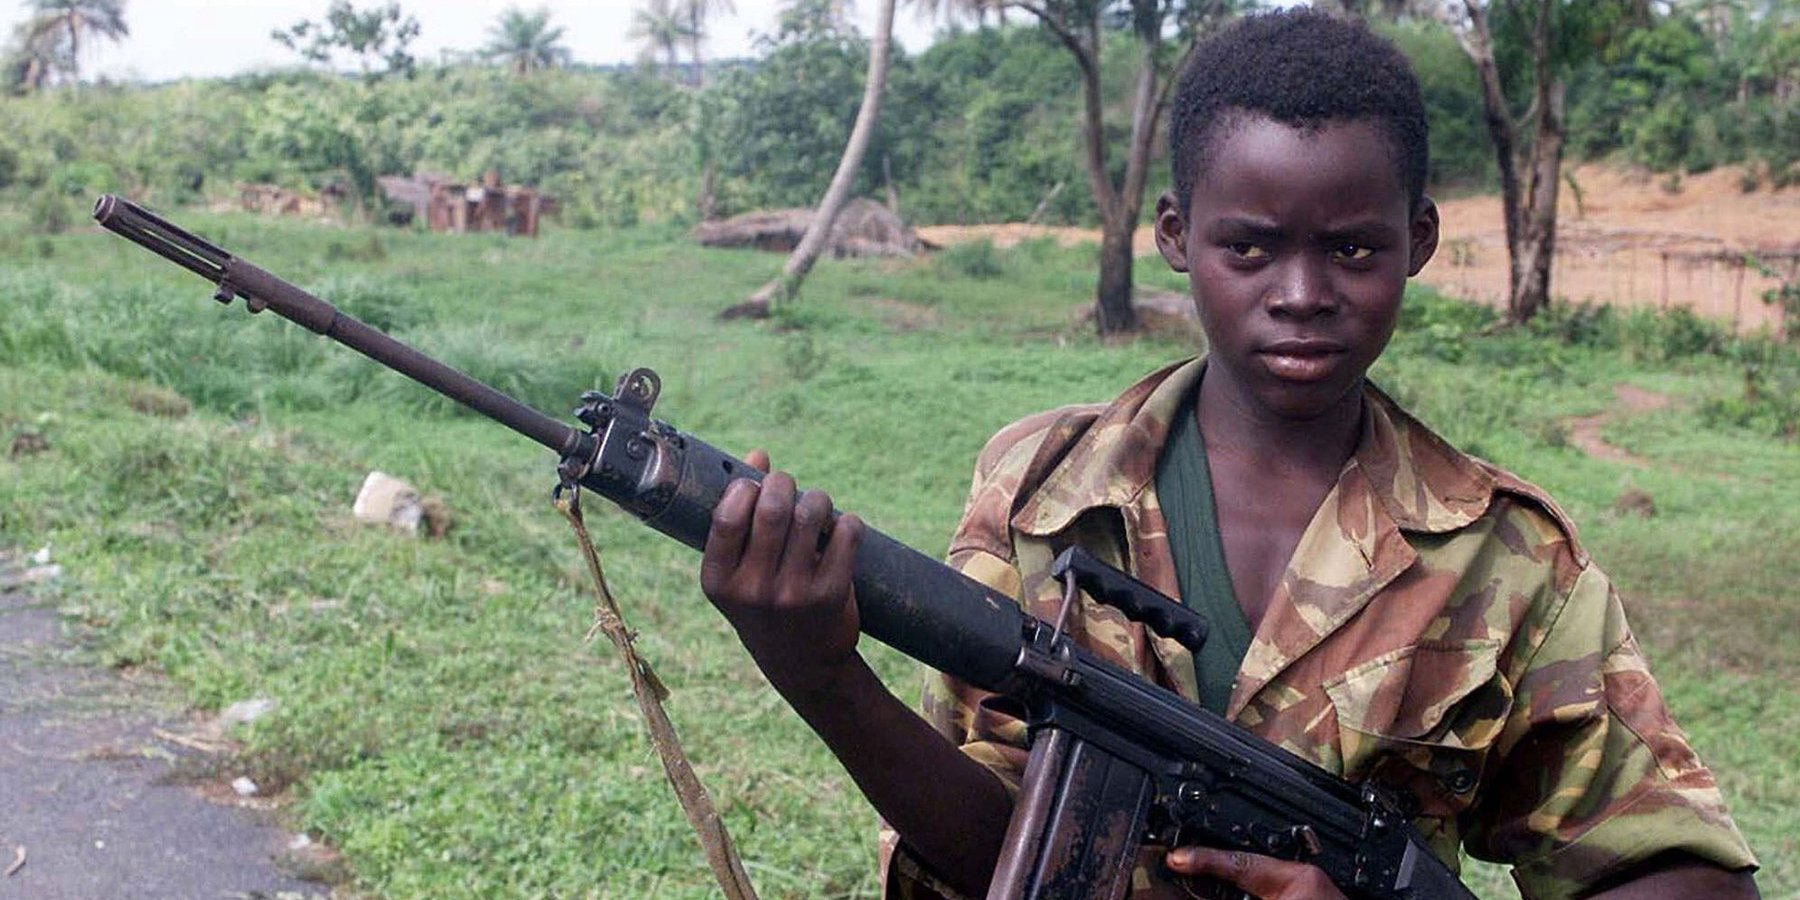 Conflict Resolution Child Soldier